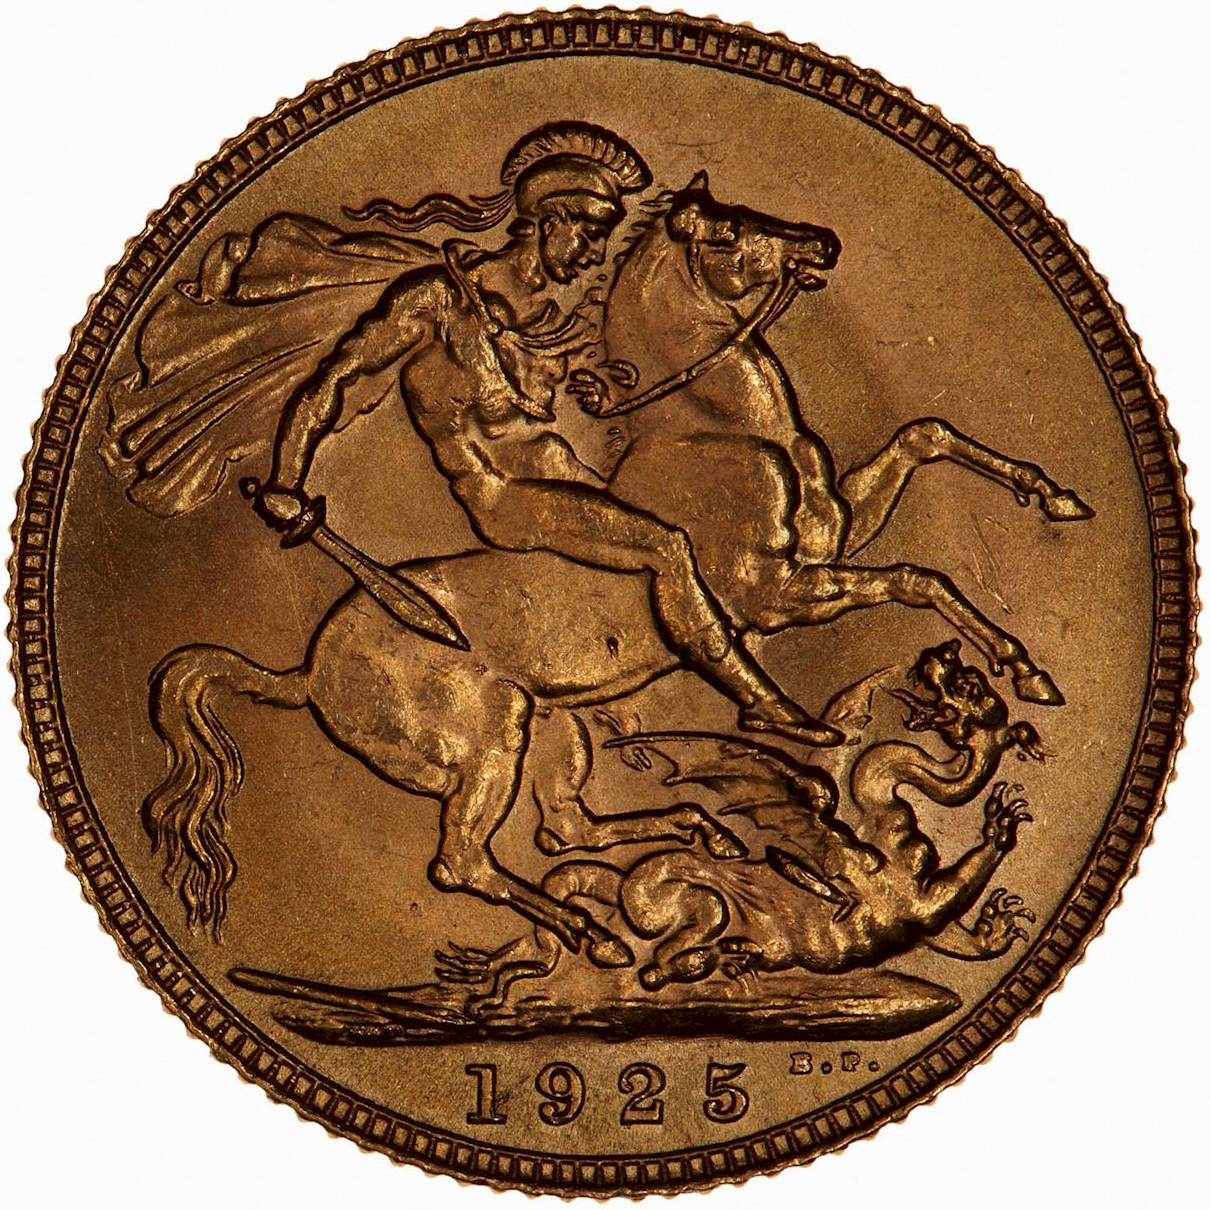 Sovereign 1925: Photo Coin - Sovereign, George V, Great Britain, 1925